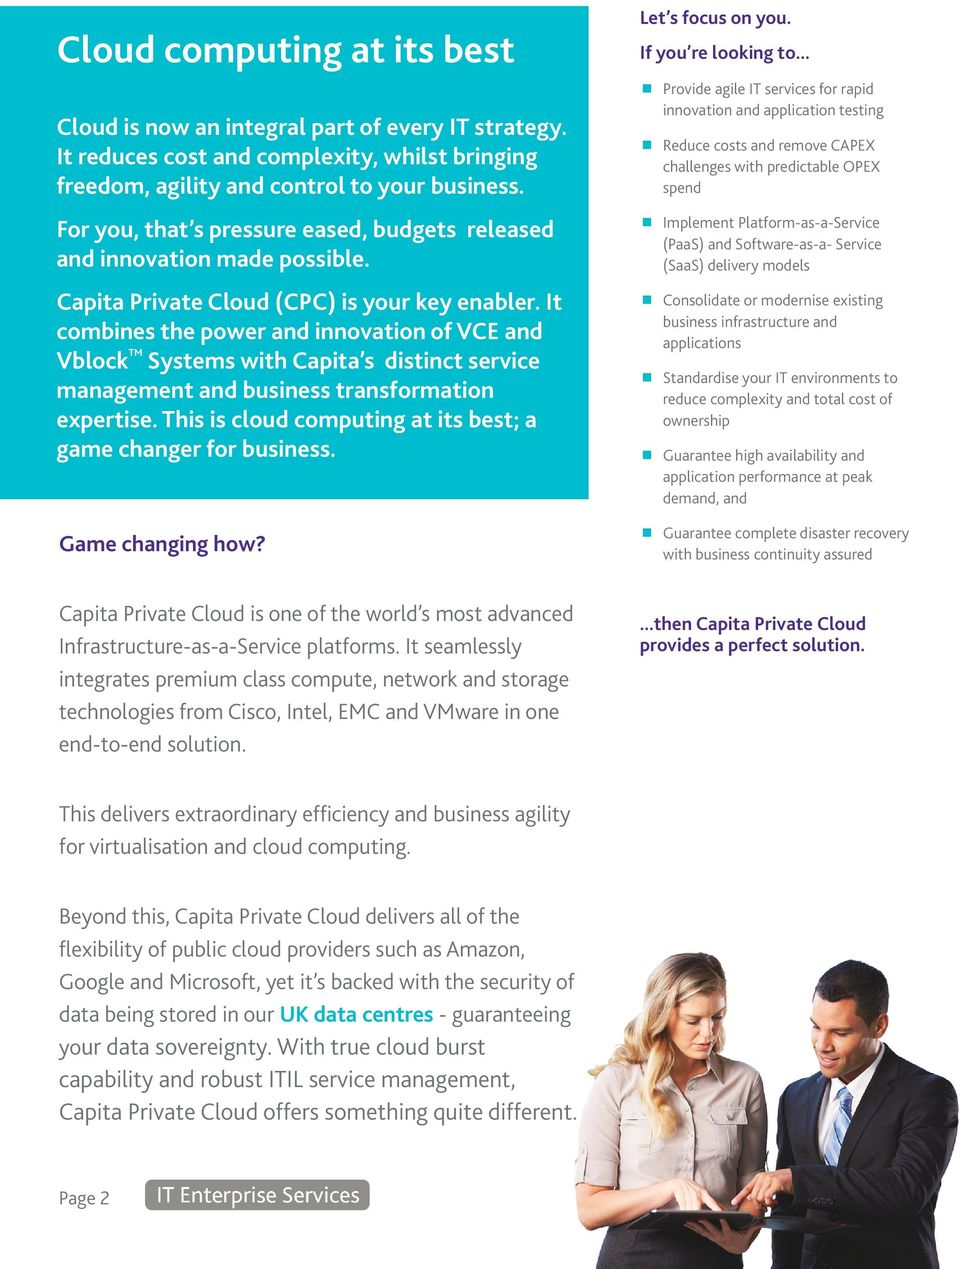 It combines the power and innovation of VCE and Vblock TM Systems with Capita s distinct service management and business transformation expertise.